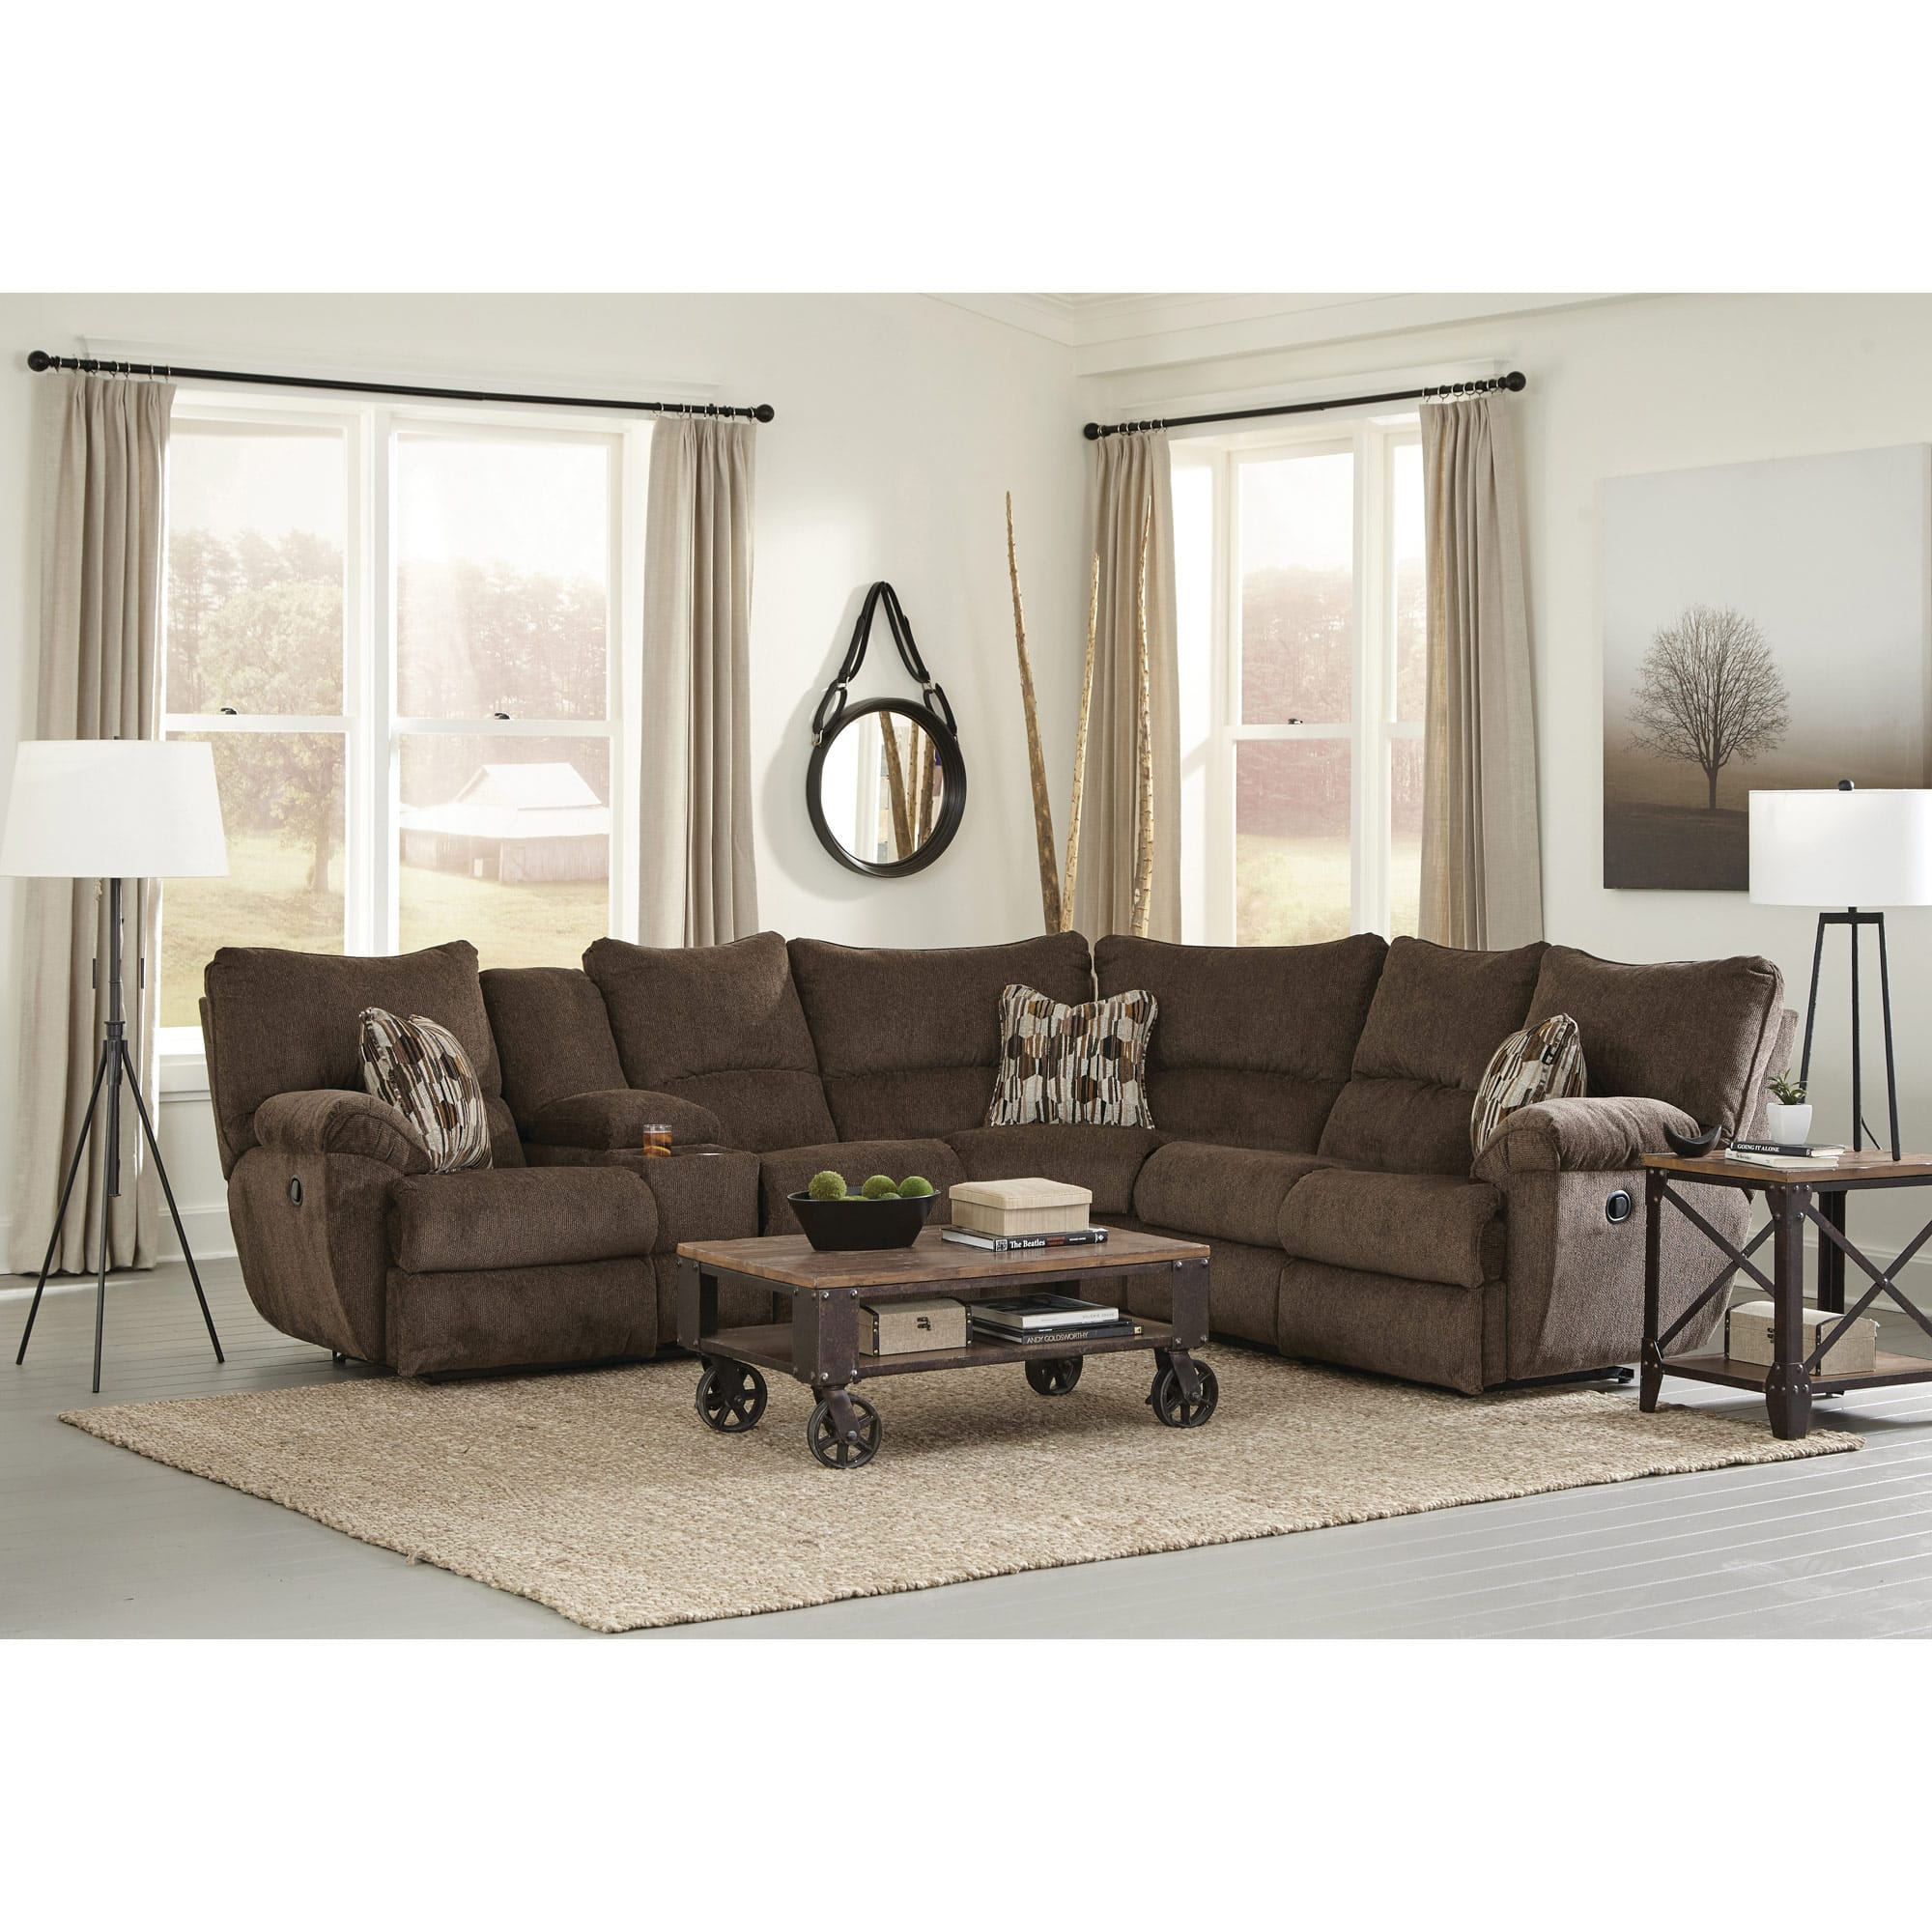 Outstanding Elliot Chocolate Lay Flat Sectional Squirreltailoven Fun Painted Chair Ideas Images Squirreltailovenorg